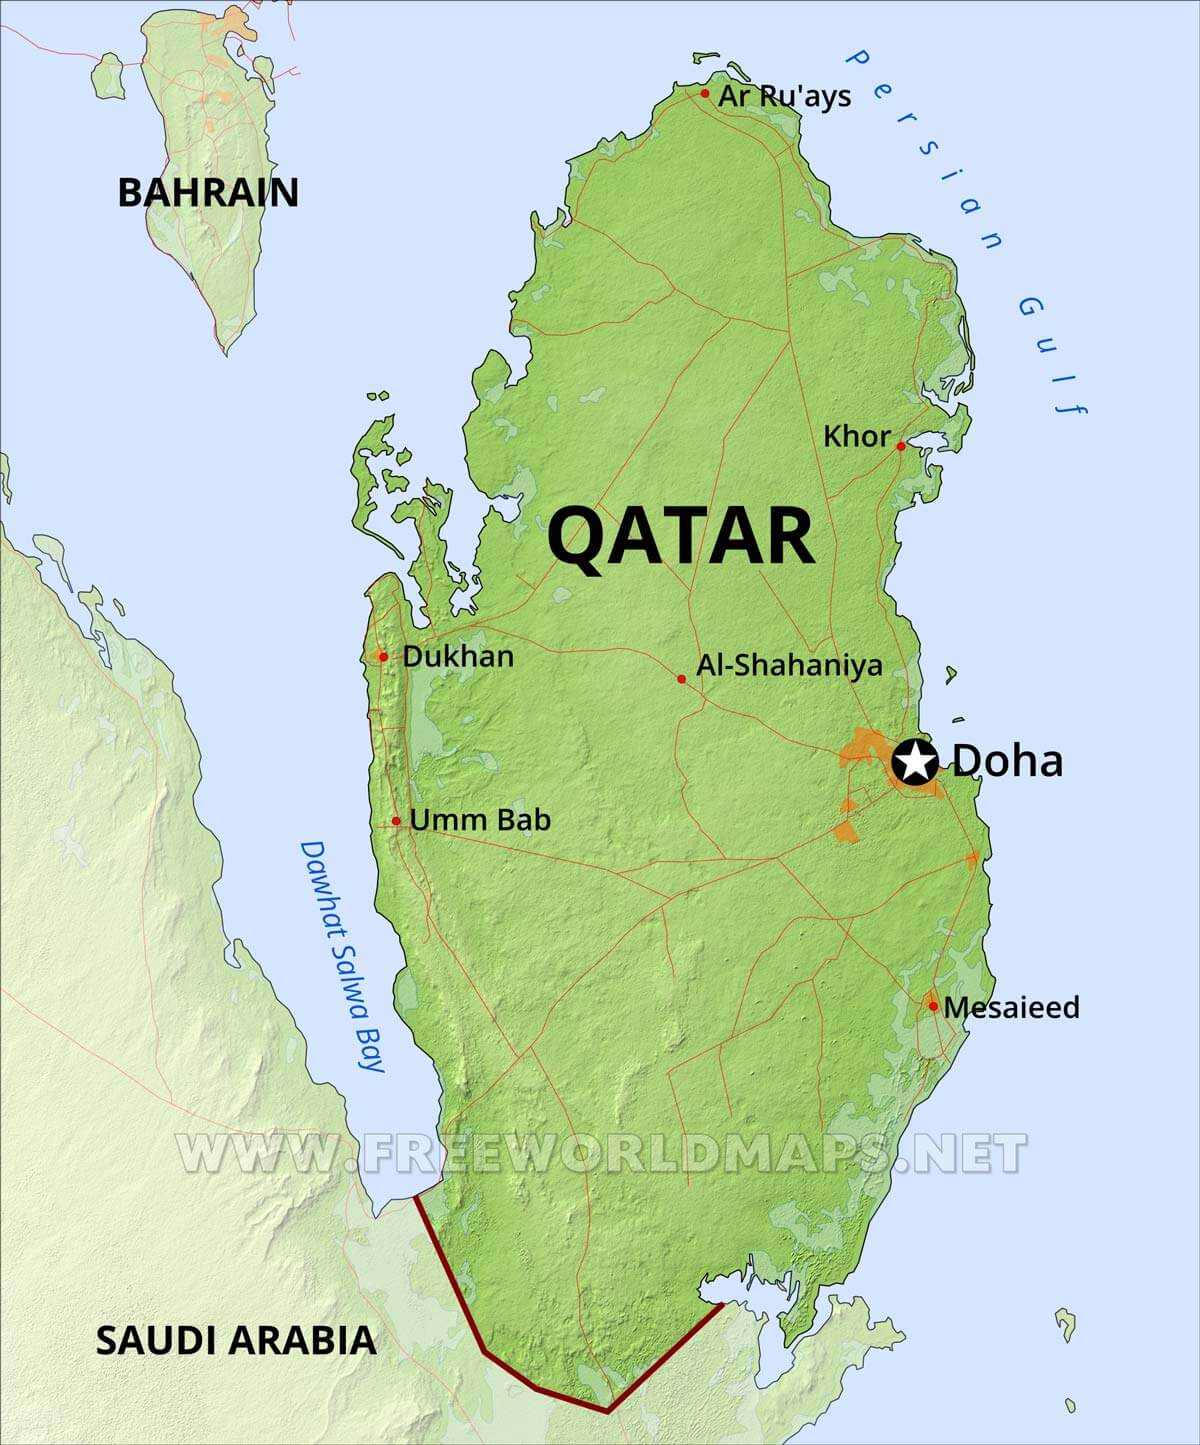 Qatar Physical Map on jordan on a map, arabian peninsula on a map, arabian sea on a map, middle east on a map, baghdad on a map, west bank on a map, gaza strip on a map, turkmenistan on a map, tunisia on a map, russia on a map, swaziland on a map, iran on a map, dead sea on a map, singapore on a map, kuwait on a map, bahrain on a map, palestine on a map, turkey on a map, cyprus on a map, kirkuk on a map,